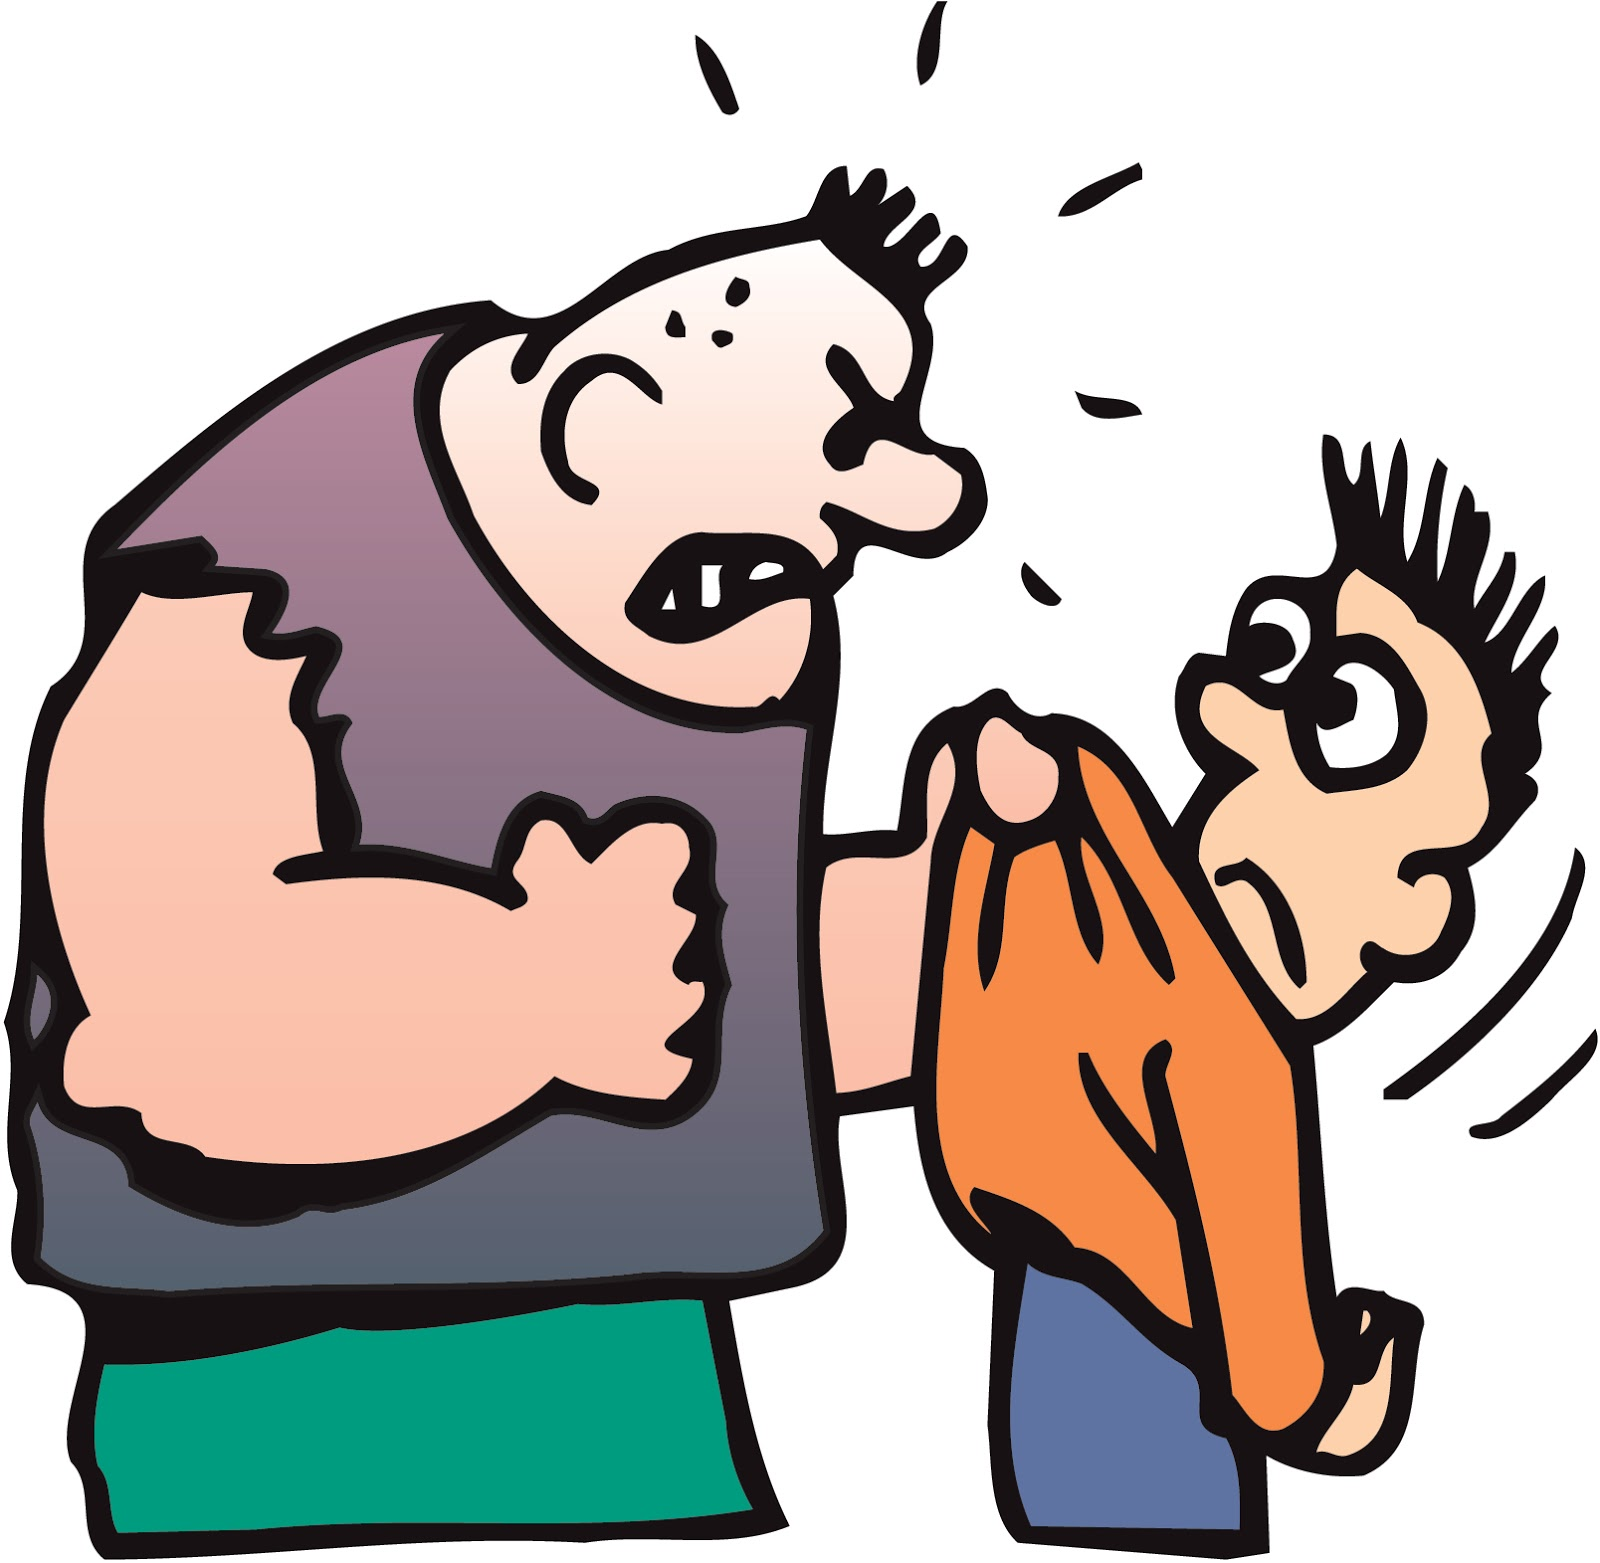 Bully clipart prejudicial. Bullying source httpclipartscocartoonpicturesofbullies